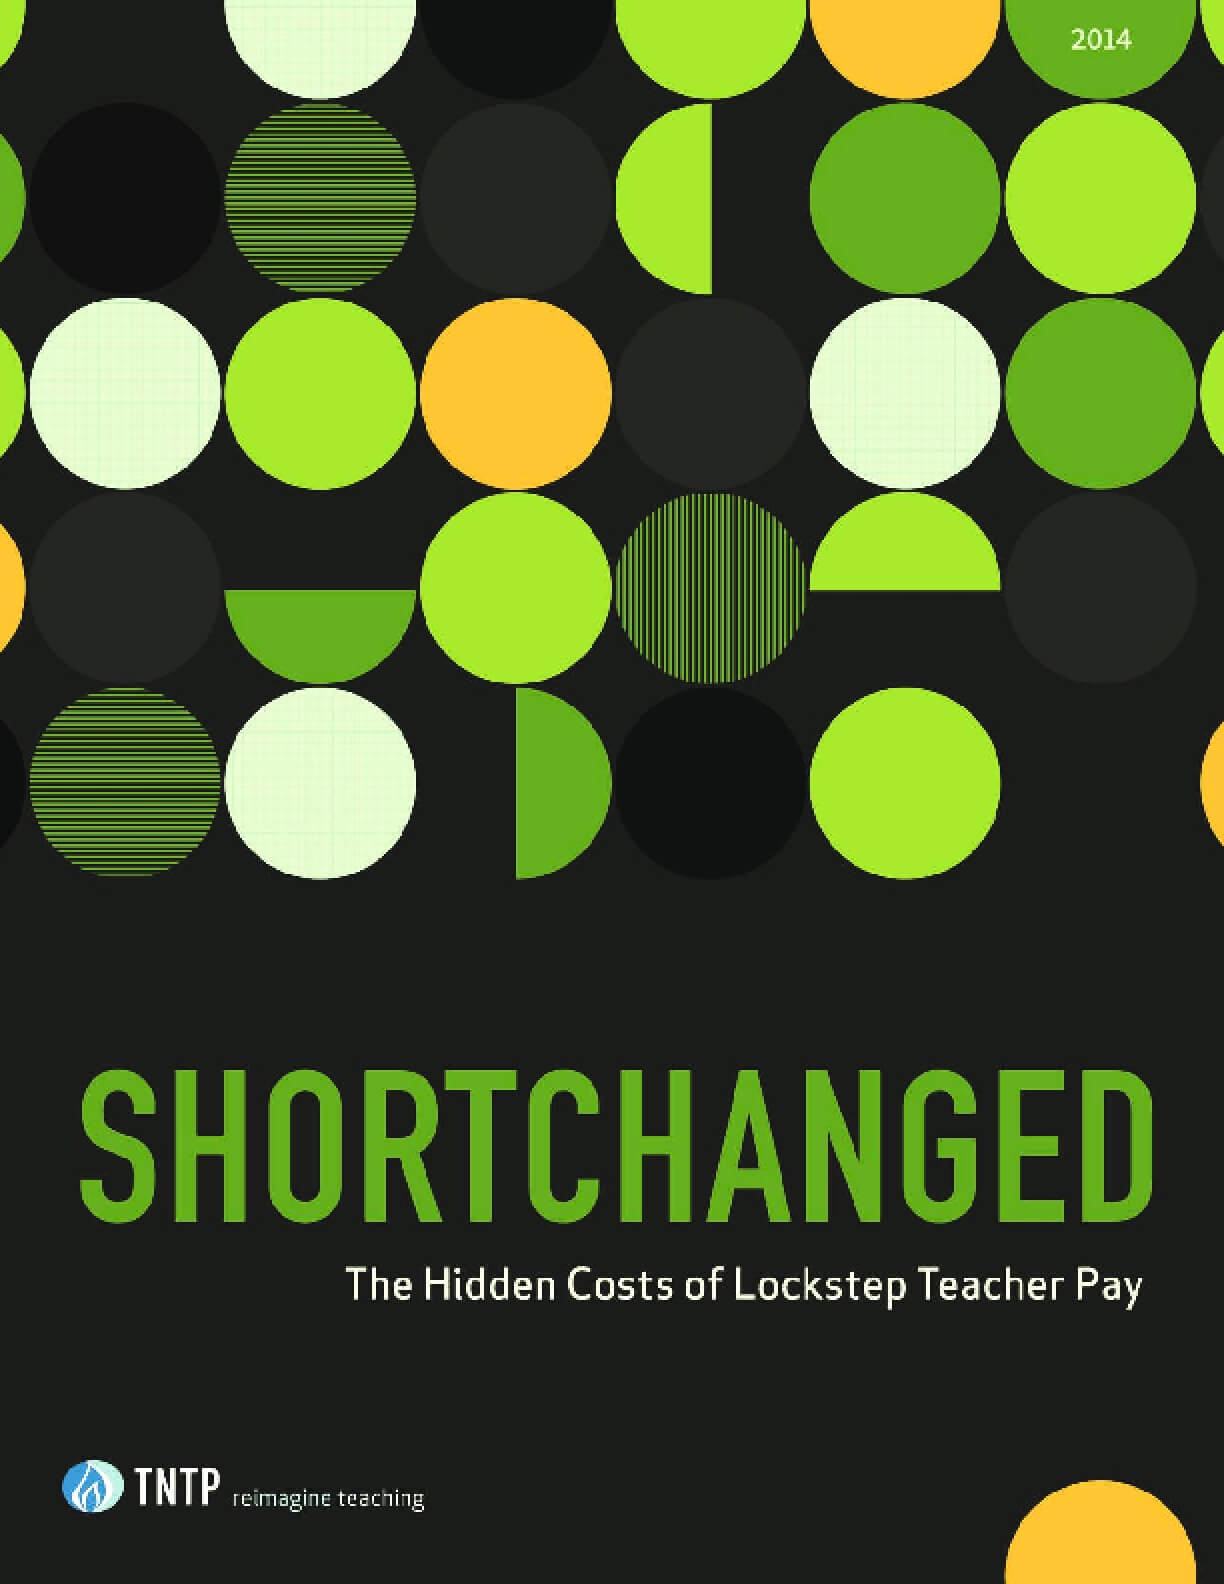 Shortchanged: The Hidden Costs of Lockstep Teacher Pay